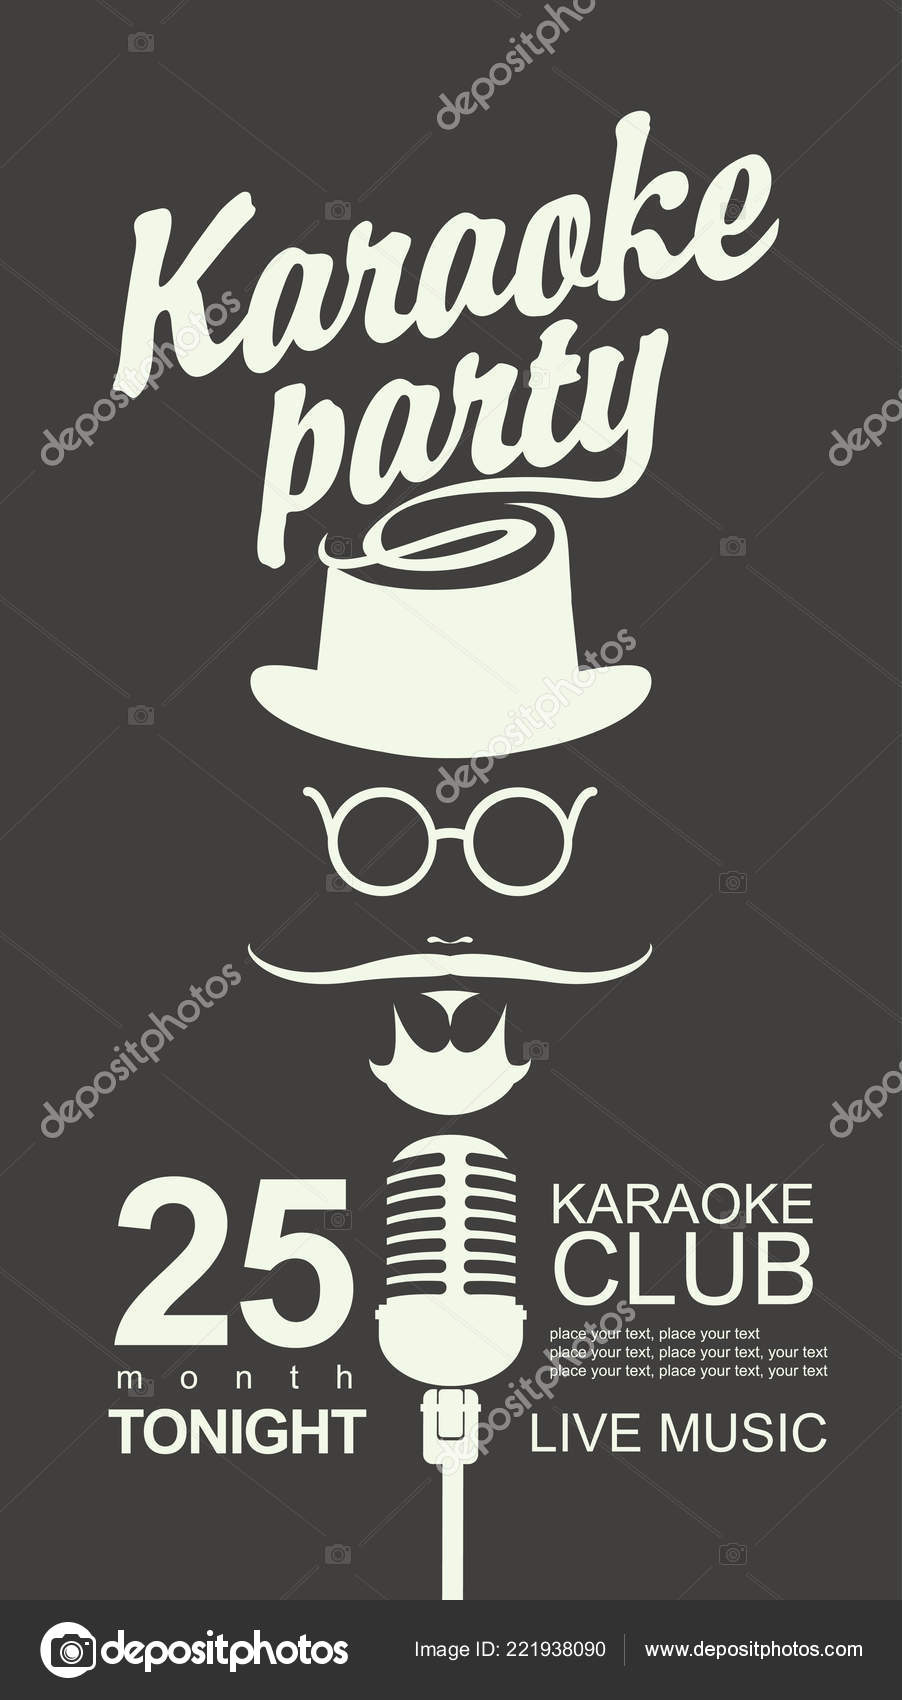 3b572f5cab6 Vector banner for karaoke club with place for text. Man face with a mustache  and wearing a hat and glasses with a microphone and an inscription karaoke  ...